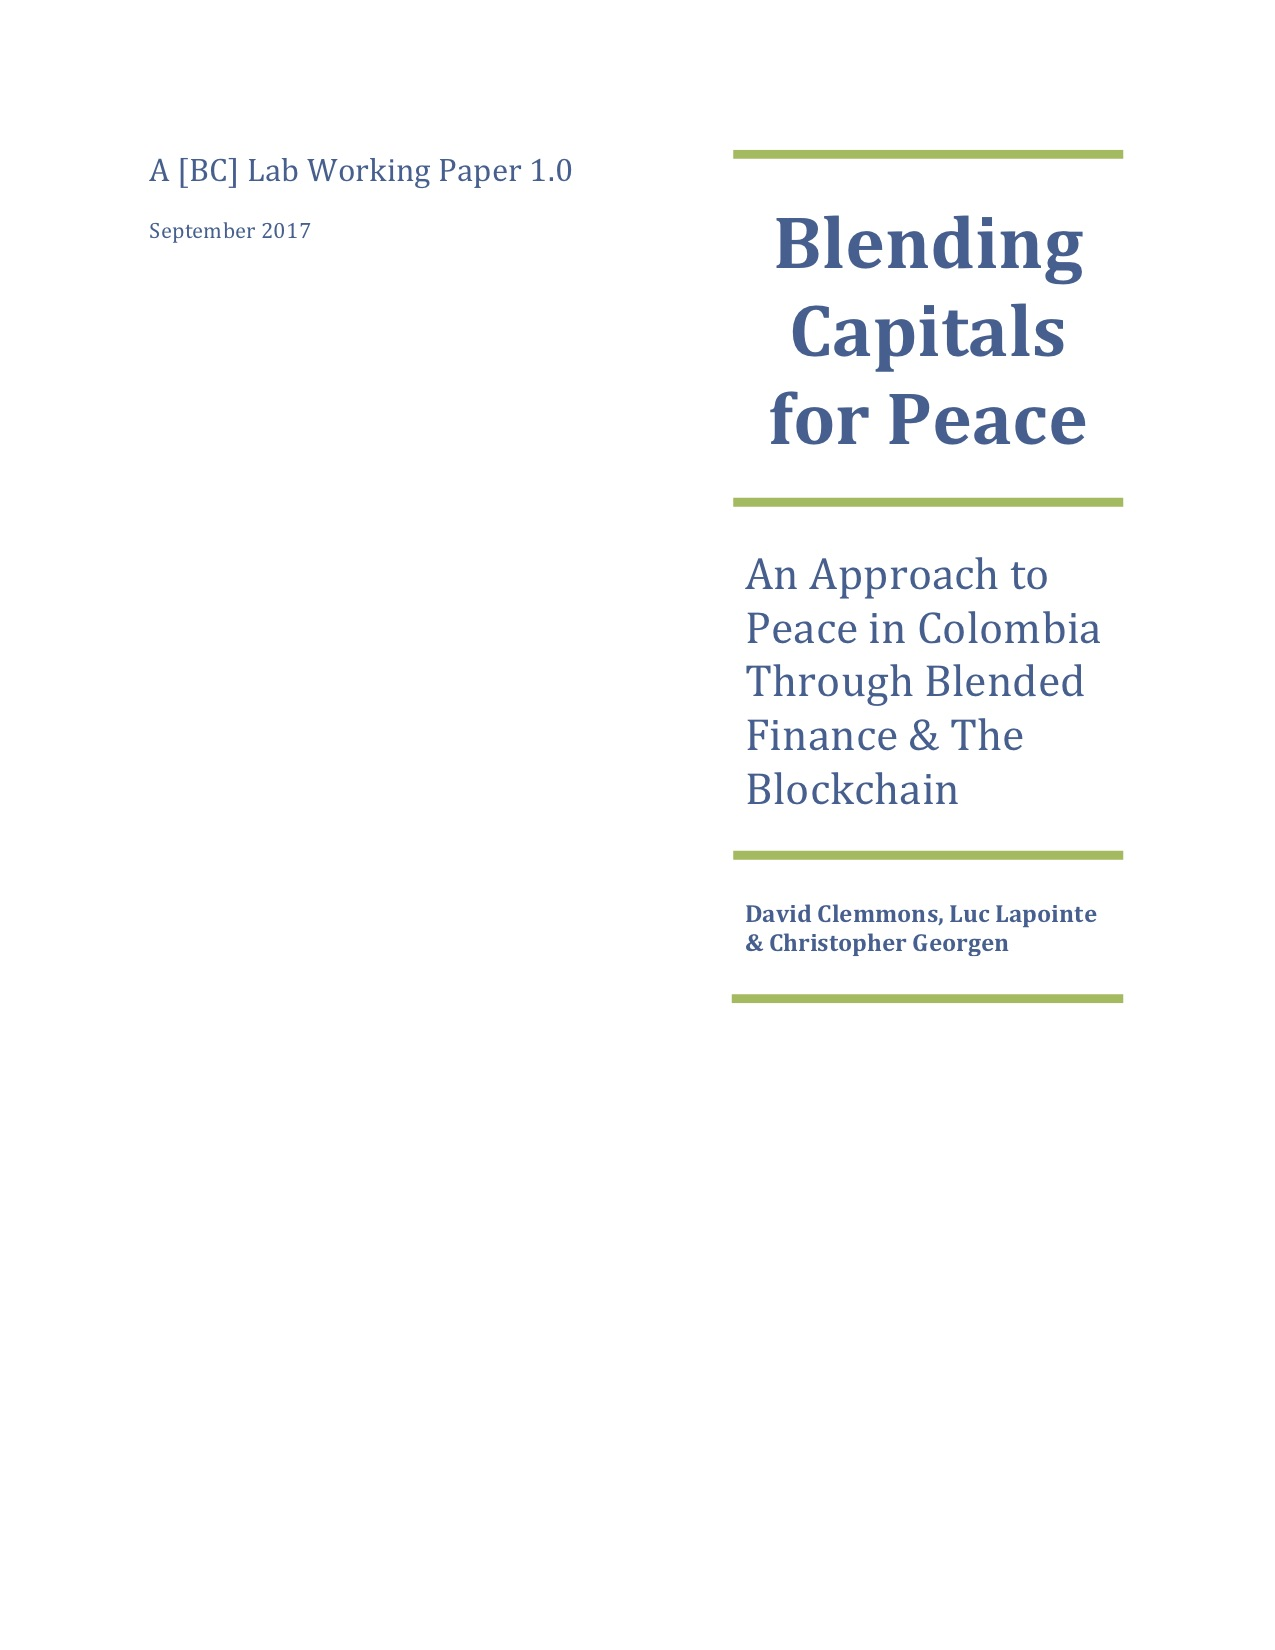 Blending Capitals for Peace: An Approach to Peace in Colombia Through Blended Finance & The Blockchain